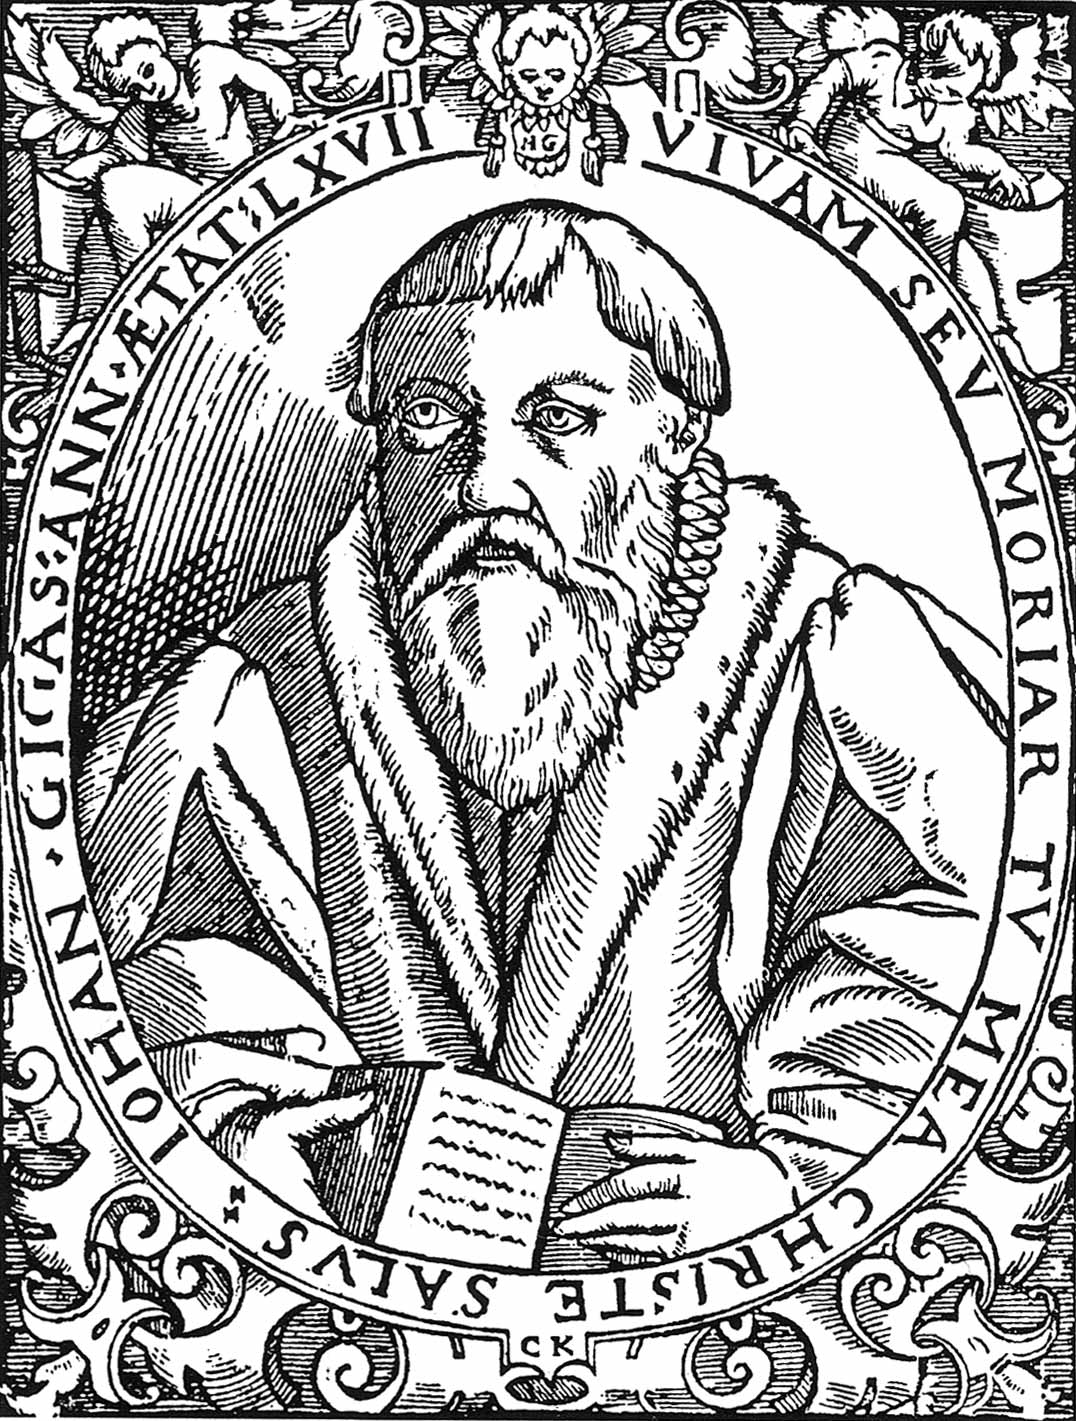 A 16th century woodcarving of Johannes Gigas (1514-1581), a German Protestant theologian, hymn writer, educator and reformer. The libretto of Ach, lieben Christen, seid getrost, BWV 114, is based on a hymn text by Gigas with the same name.